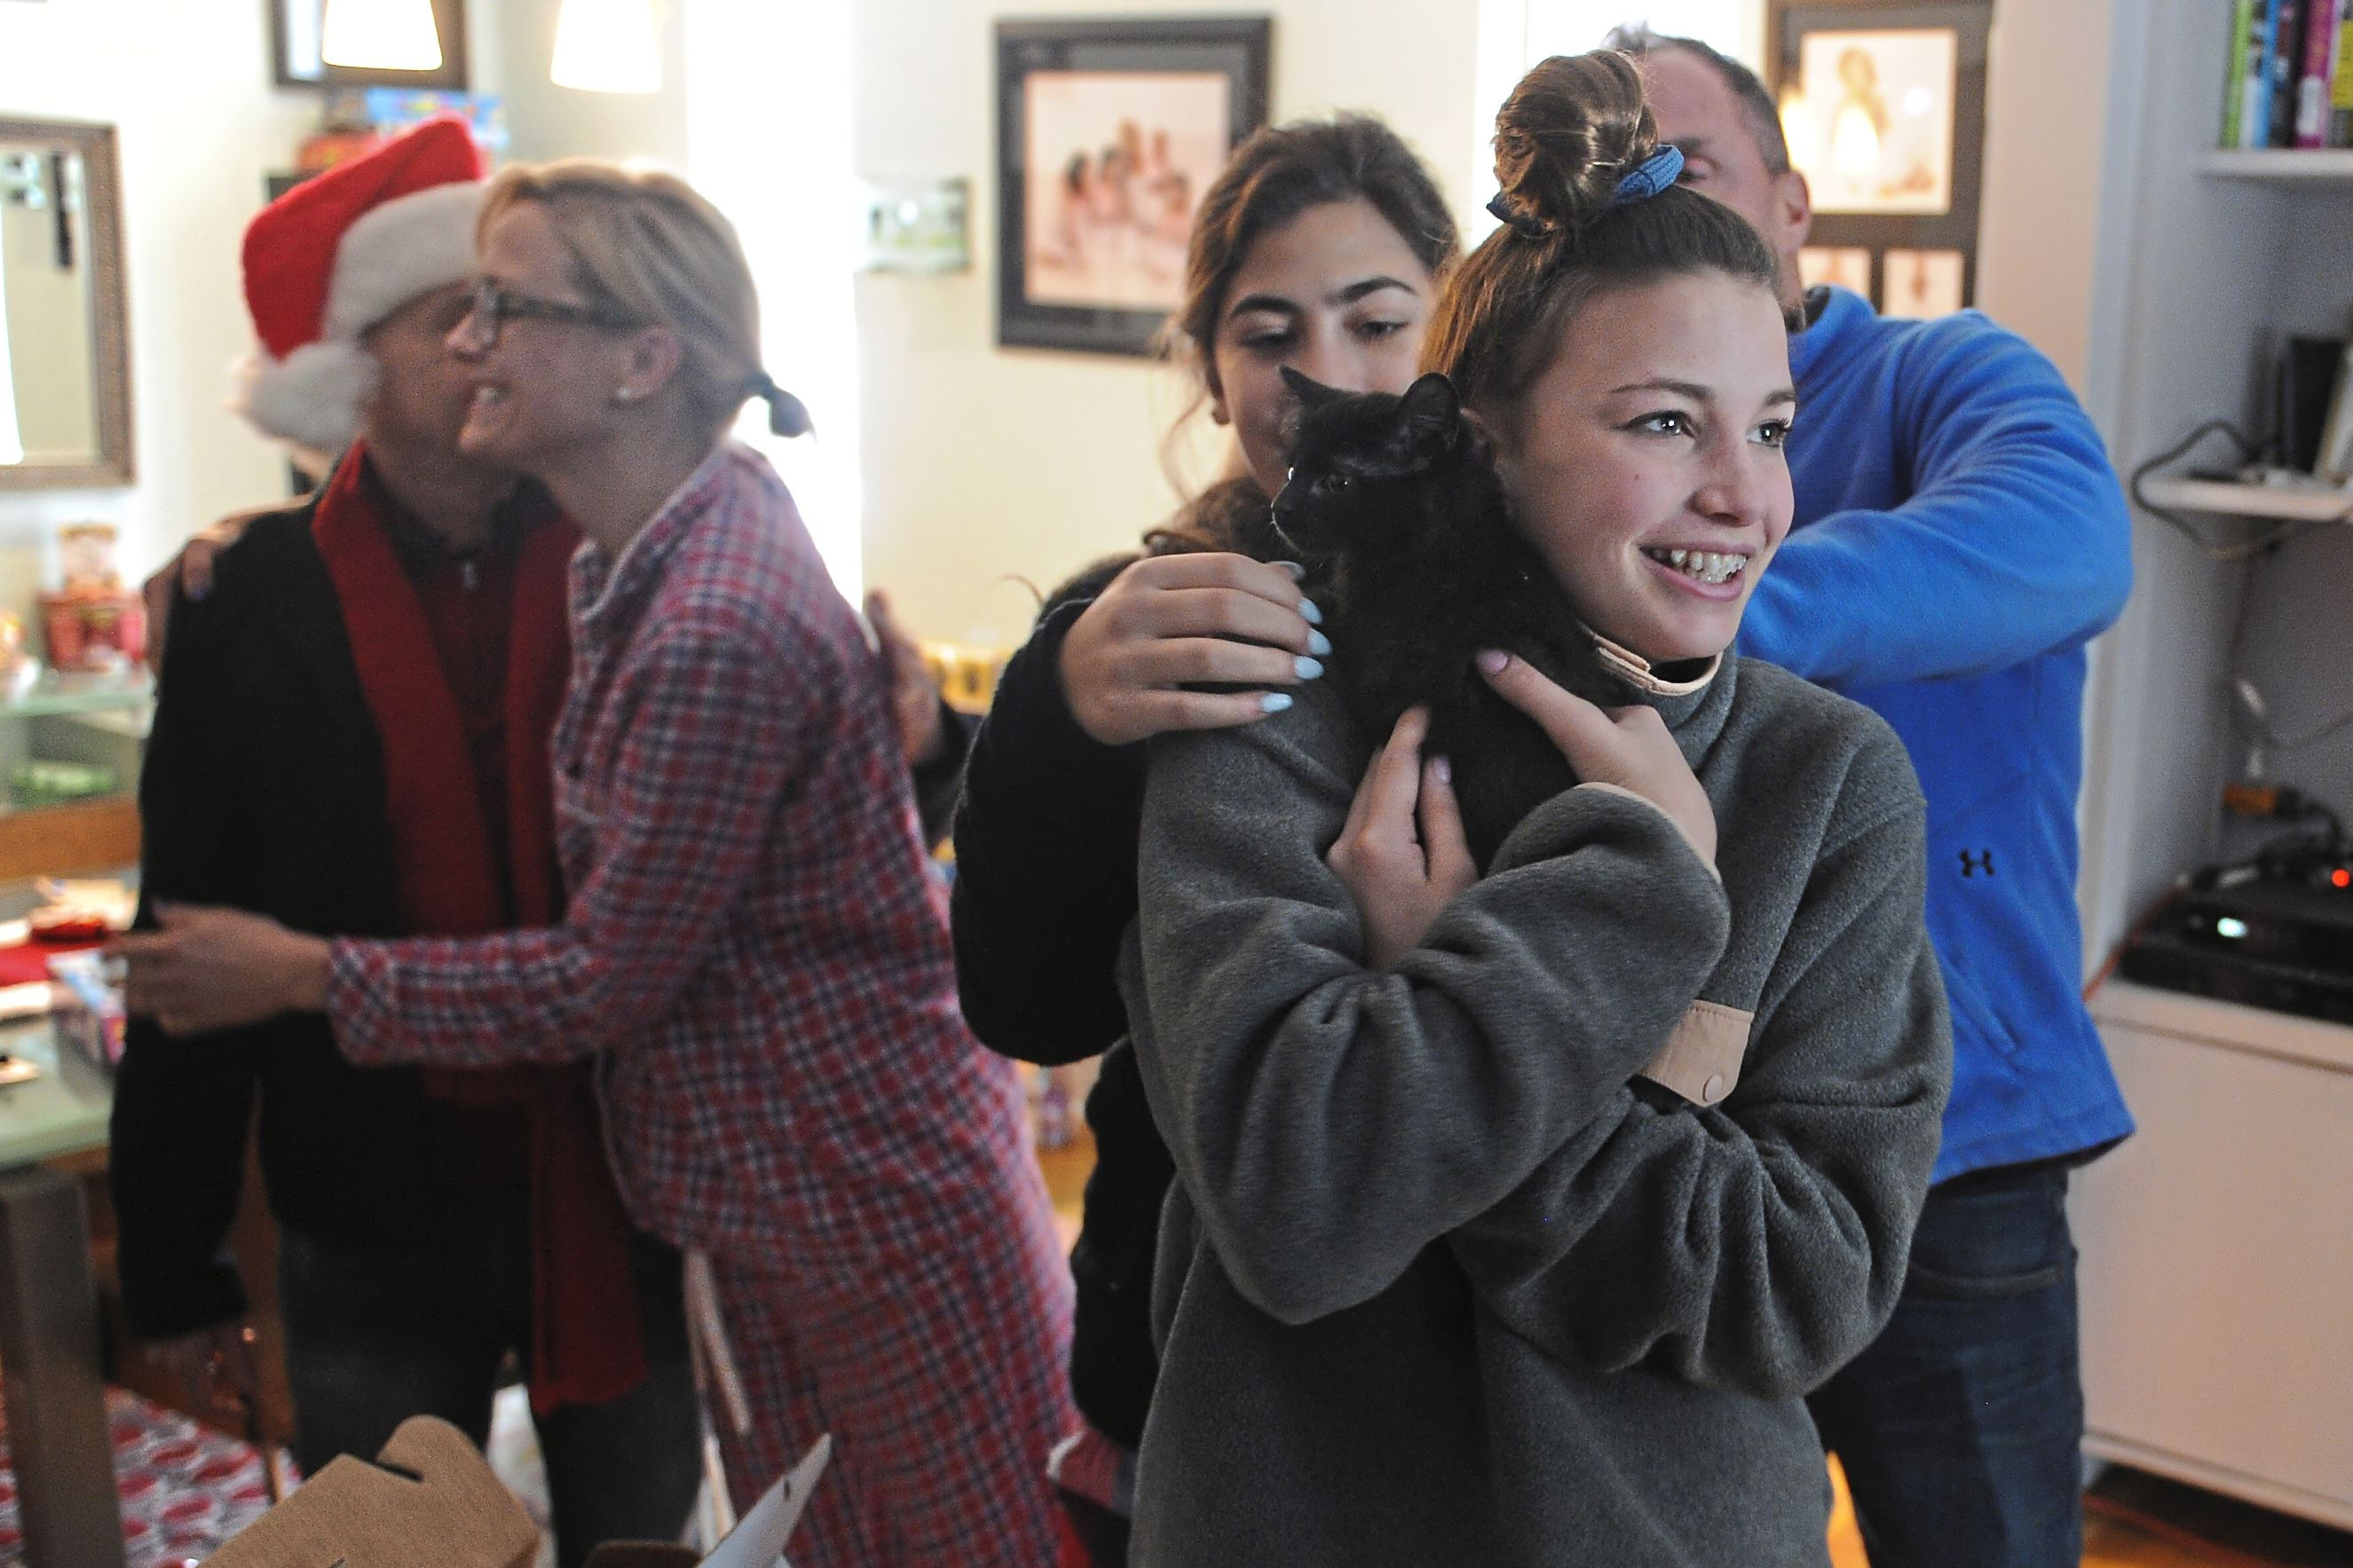 20171225ng-Kitten4 Piper Reck, 14, holds one of the two 9-week-old kittens at her home in Squirrel Hill.